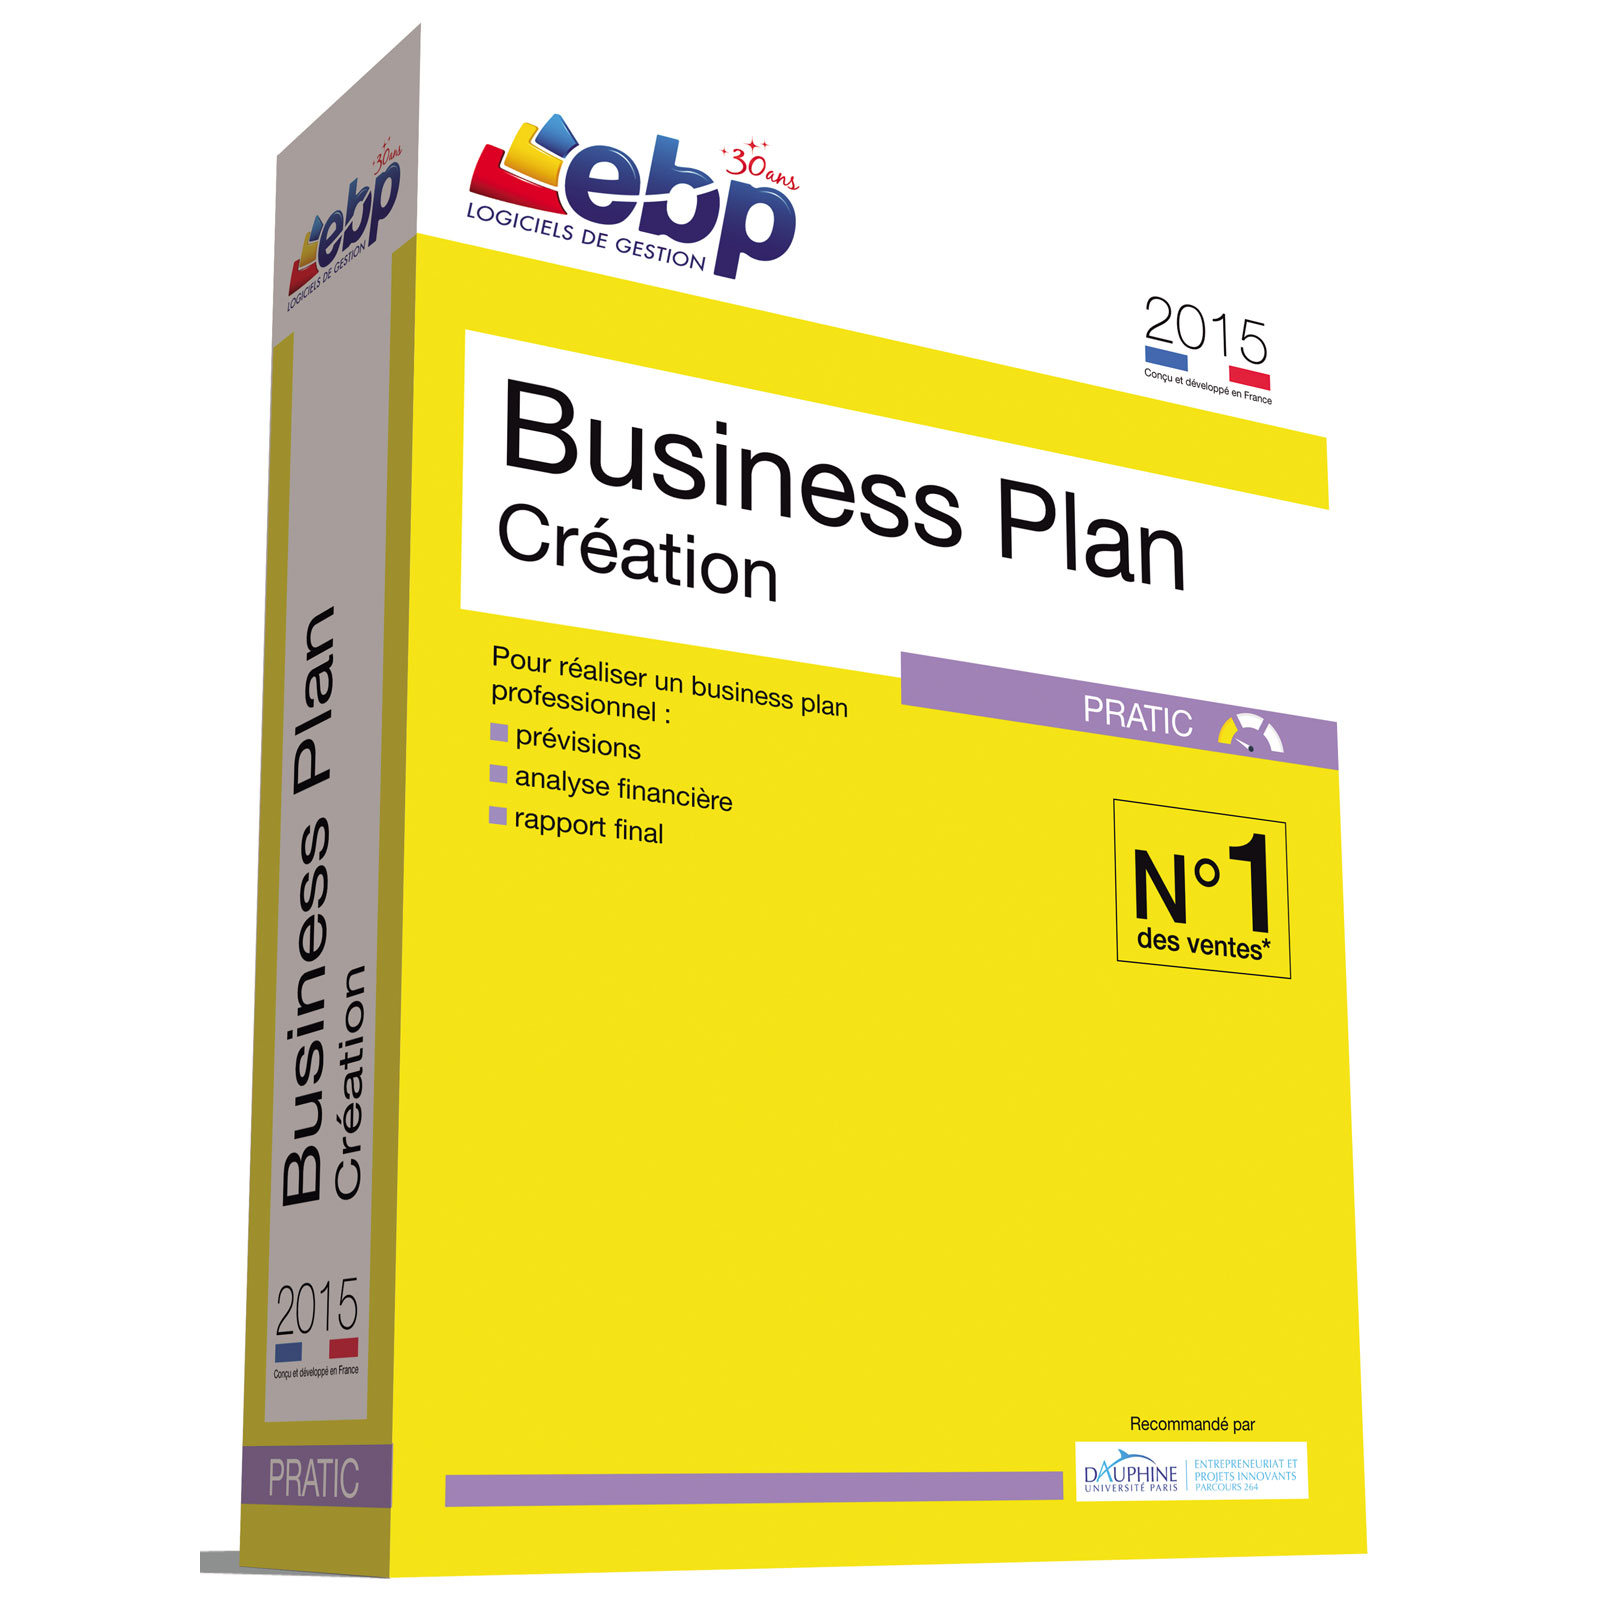 Ebp business plan cr ation pratic 2015 logiciel cr ation for Logiciel creation de plan